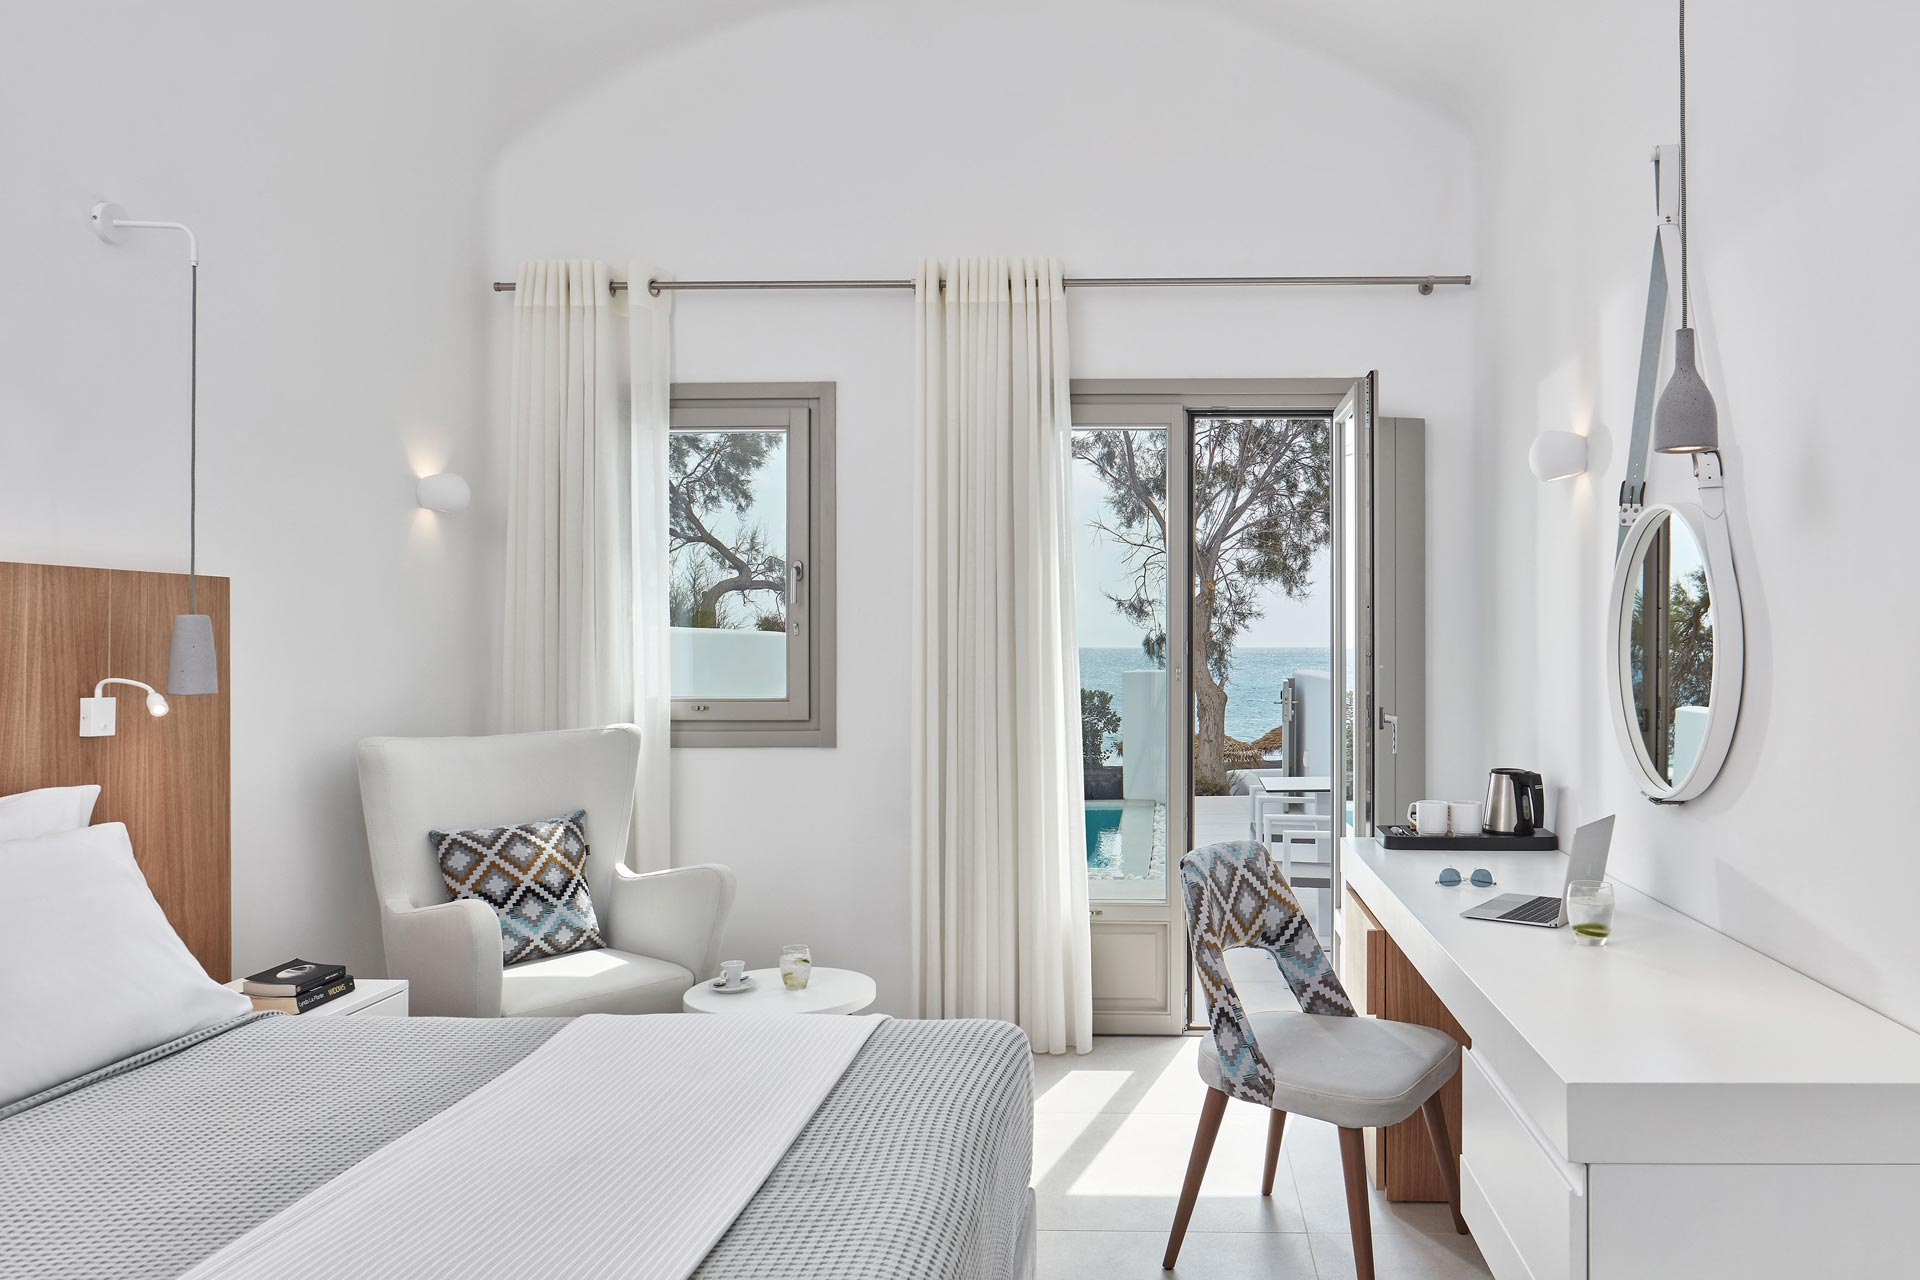 Costa Grand Suites, 5-star Hotel, Kamari Beach, Santorini